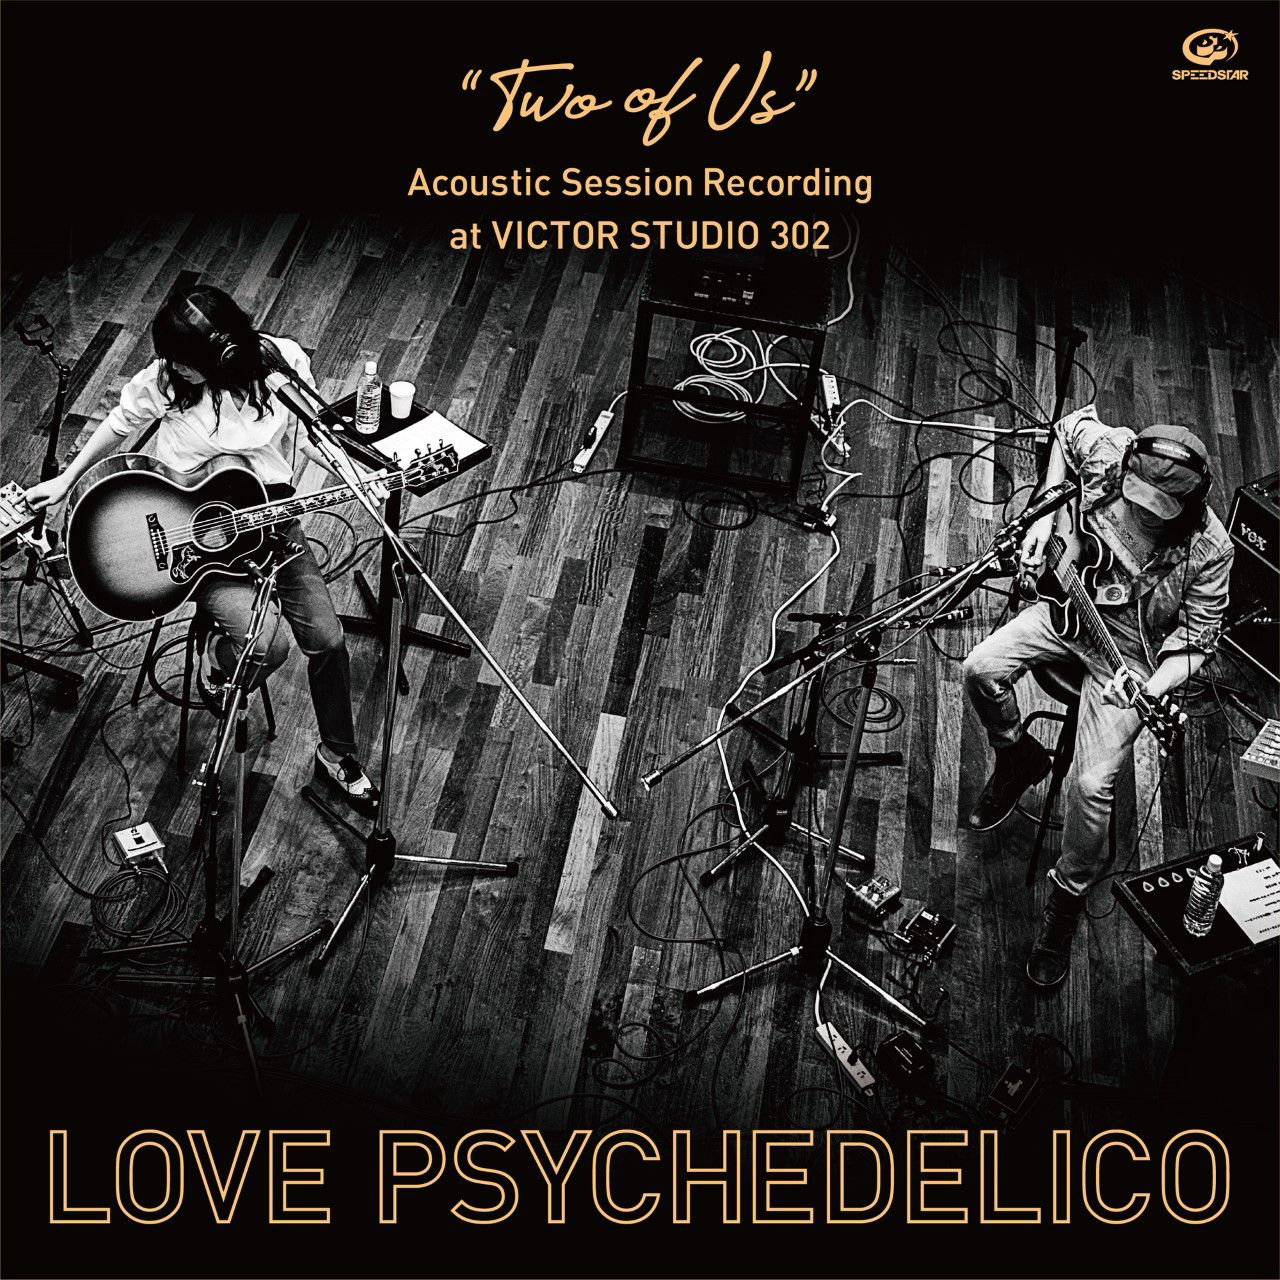 """Vinyl Record:""""TWO OF US"""" Acoustic Session Recording at VICTOR STUDIO 302"""